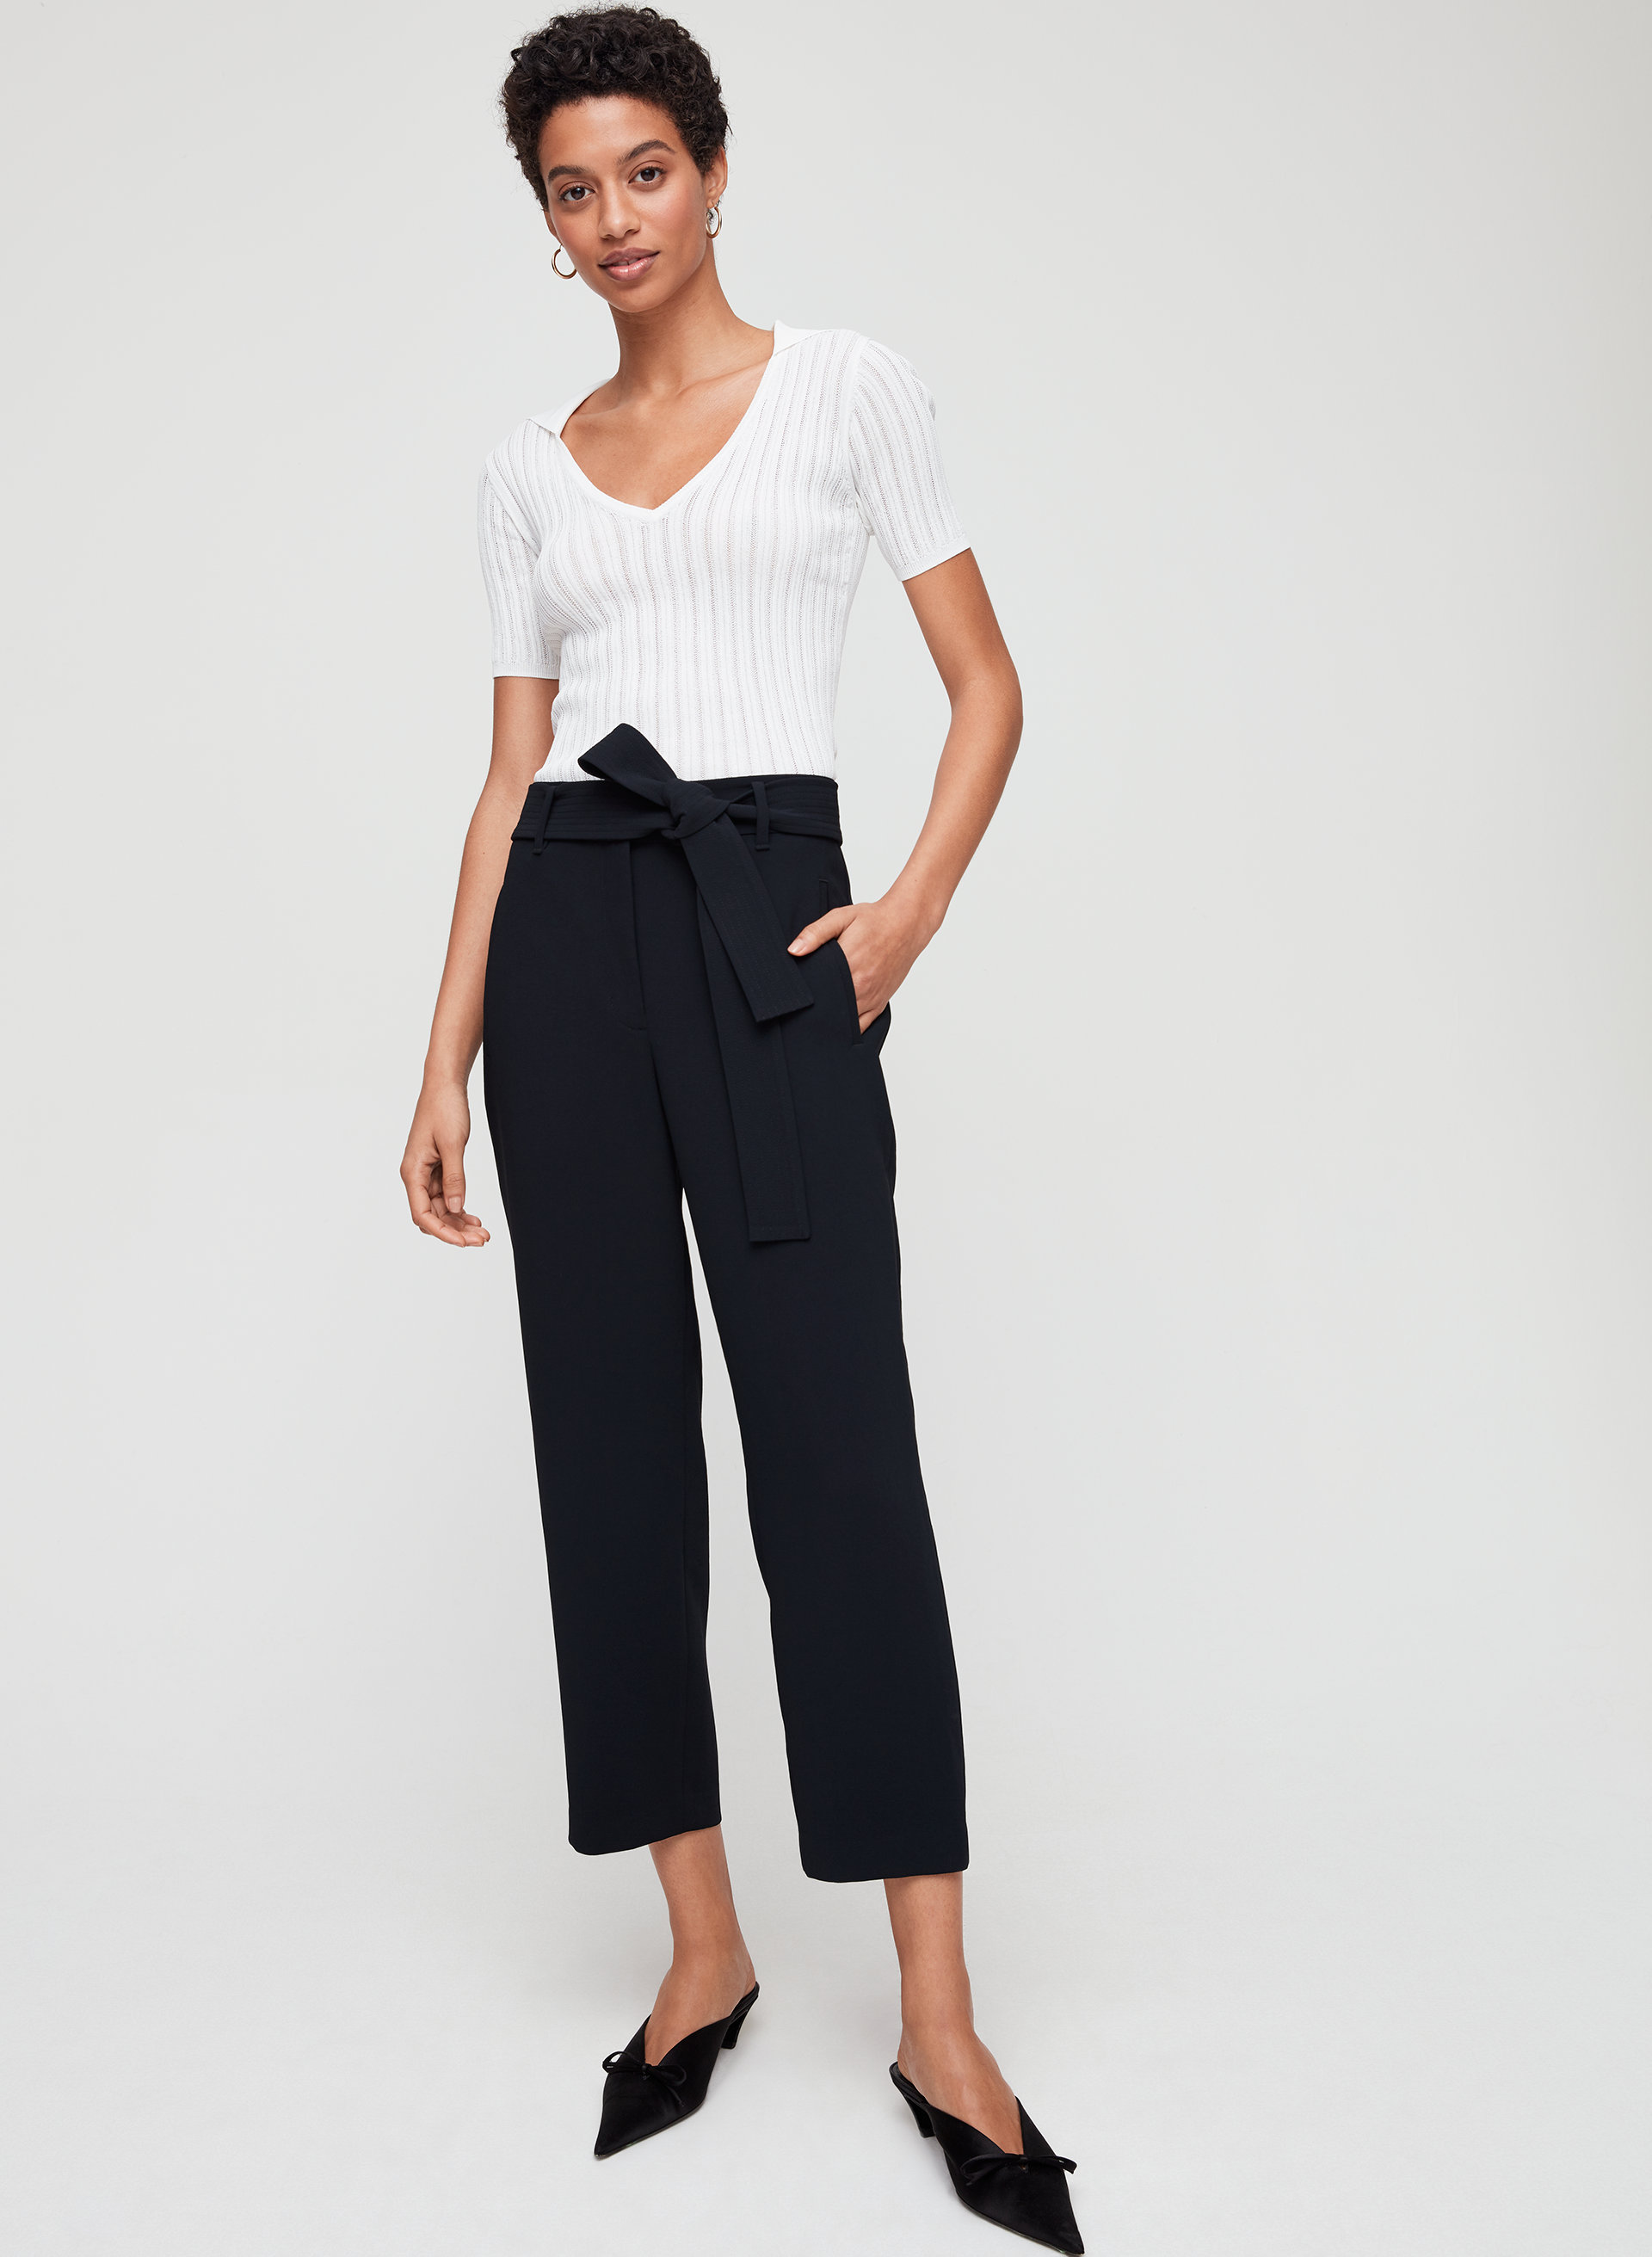 881fba677d547 Wilfred TIE-FRONT PANT